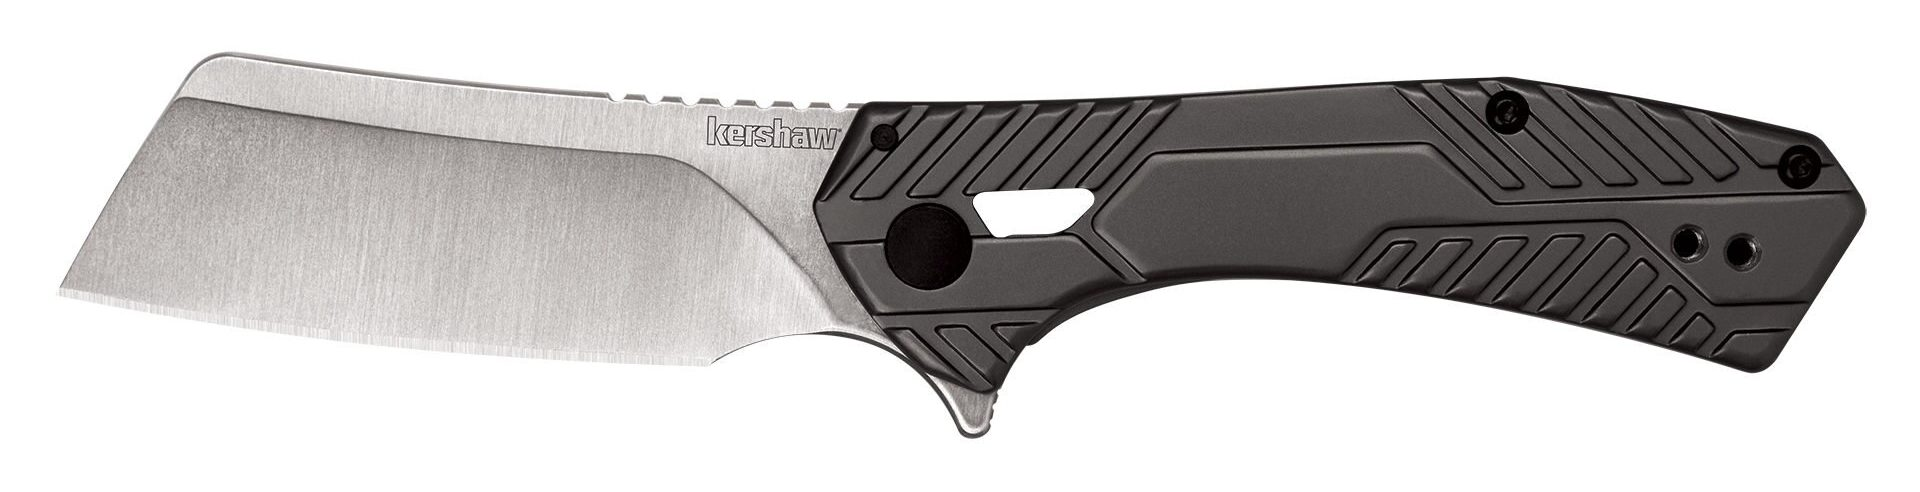 Pocket cleaver with black handle from Kershaw